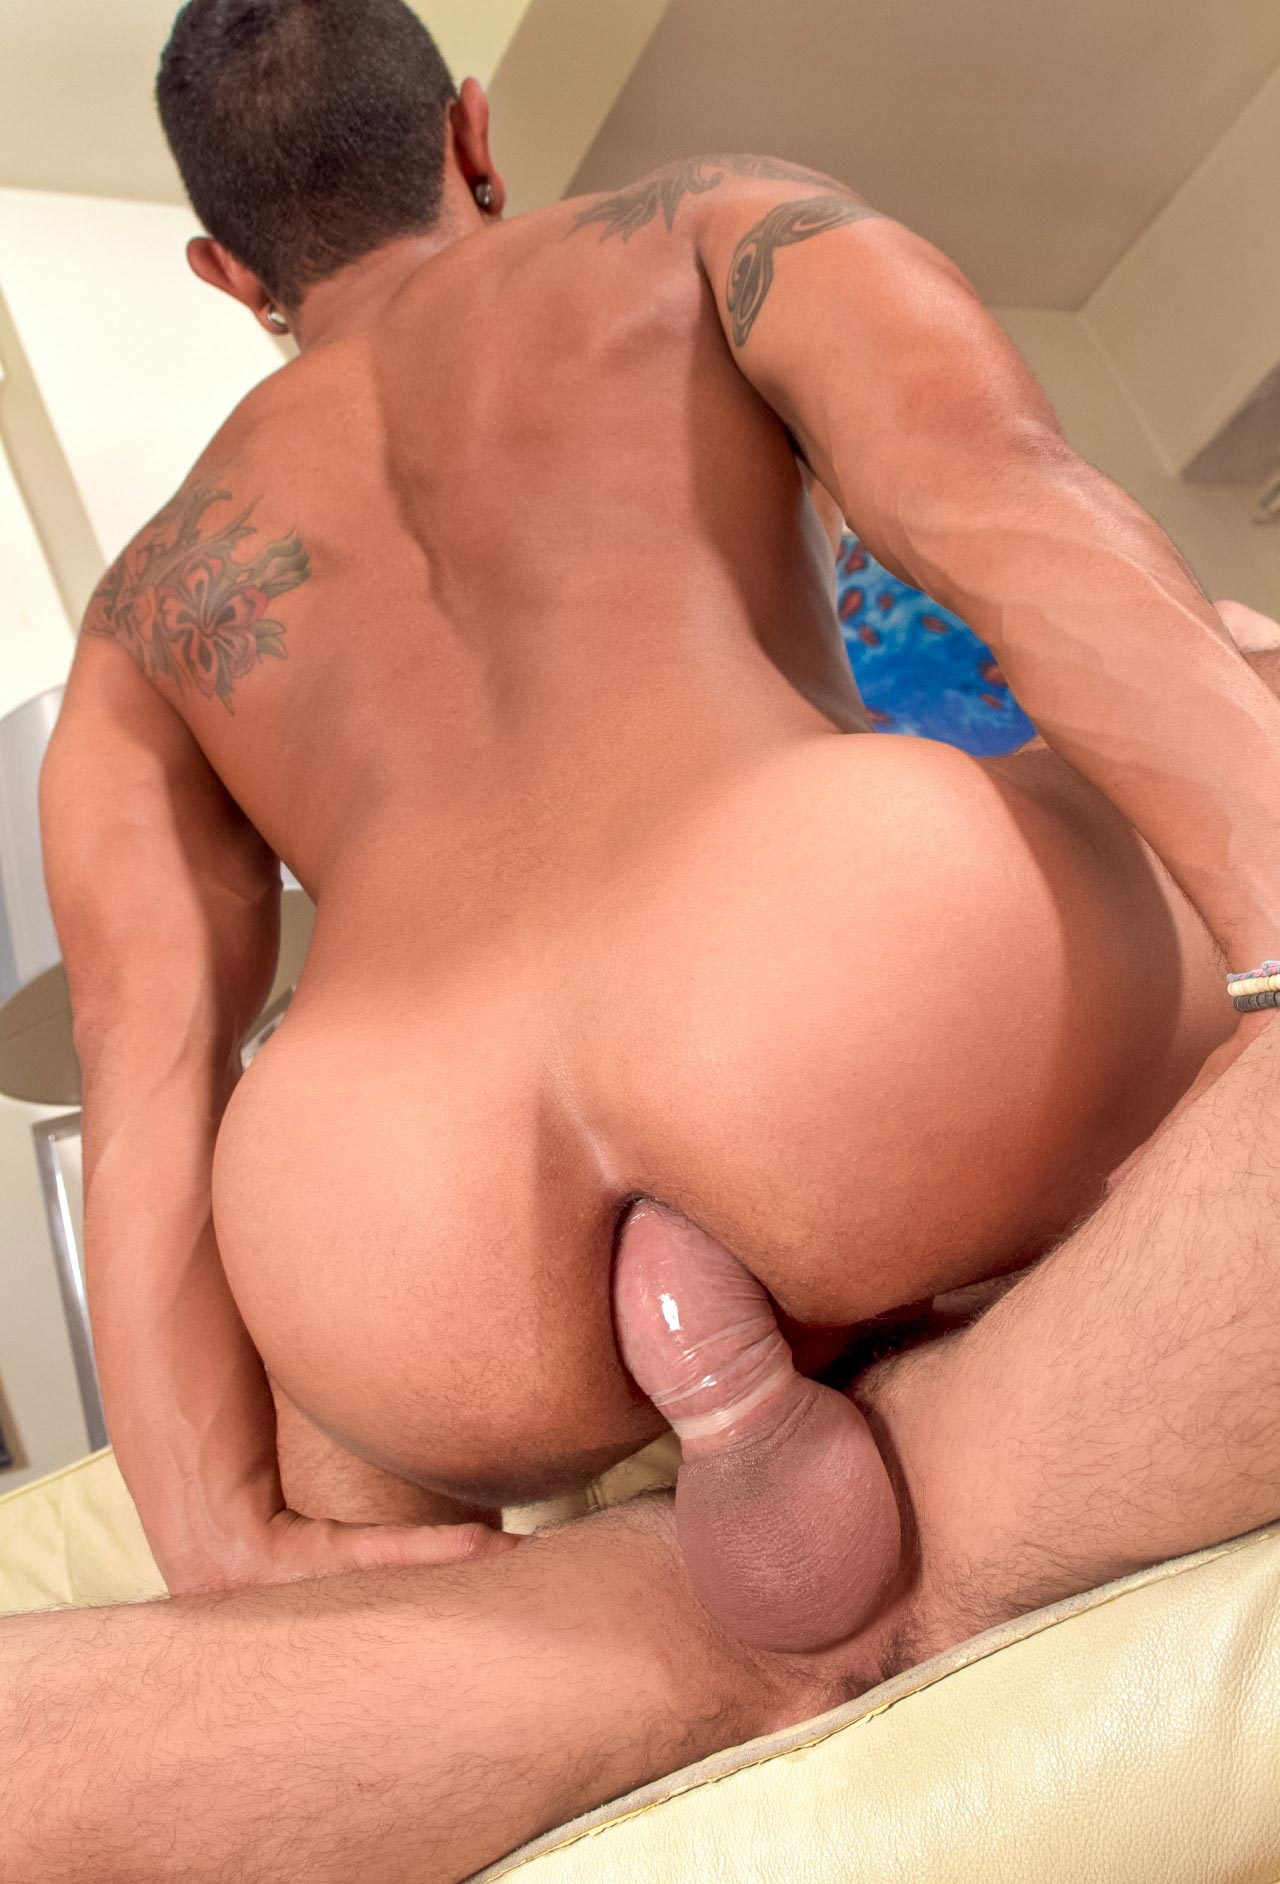 ver porno gay la plata escorts